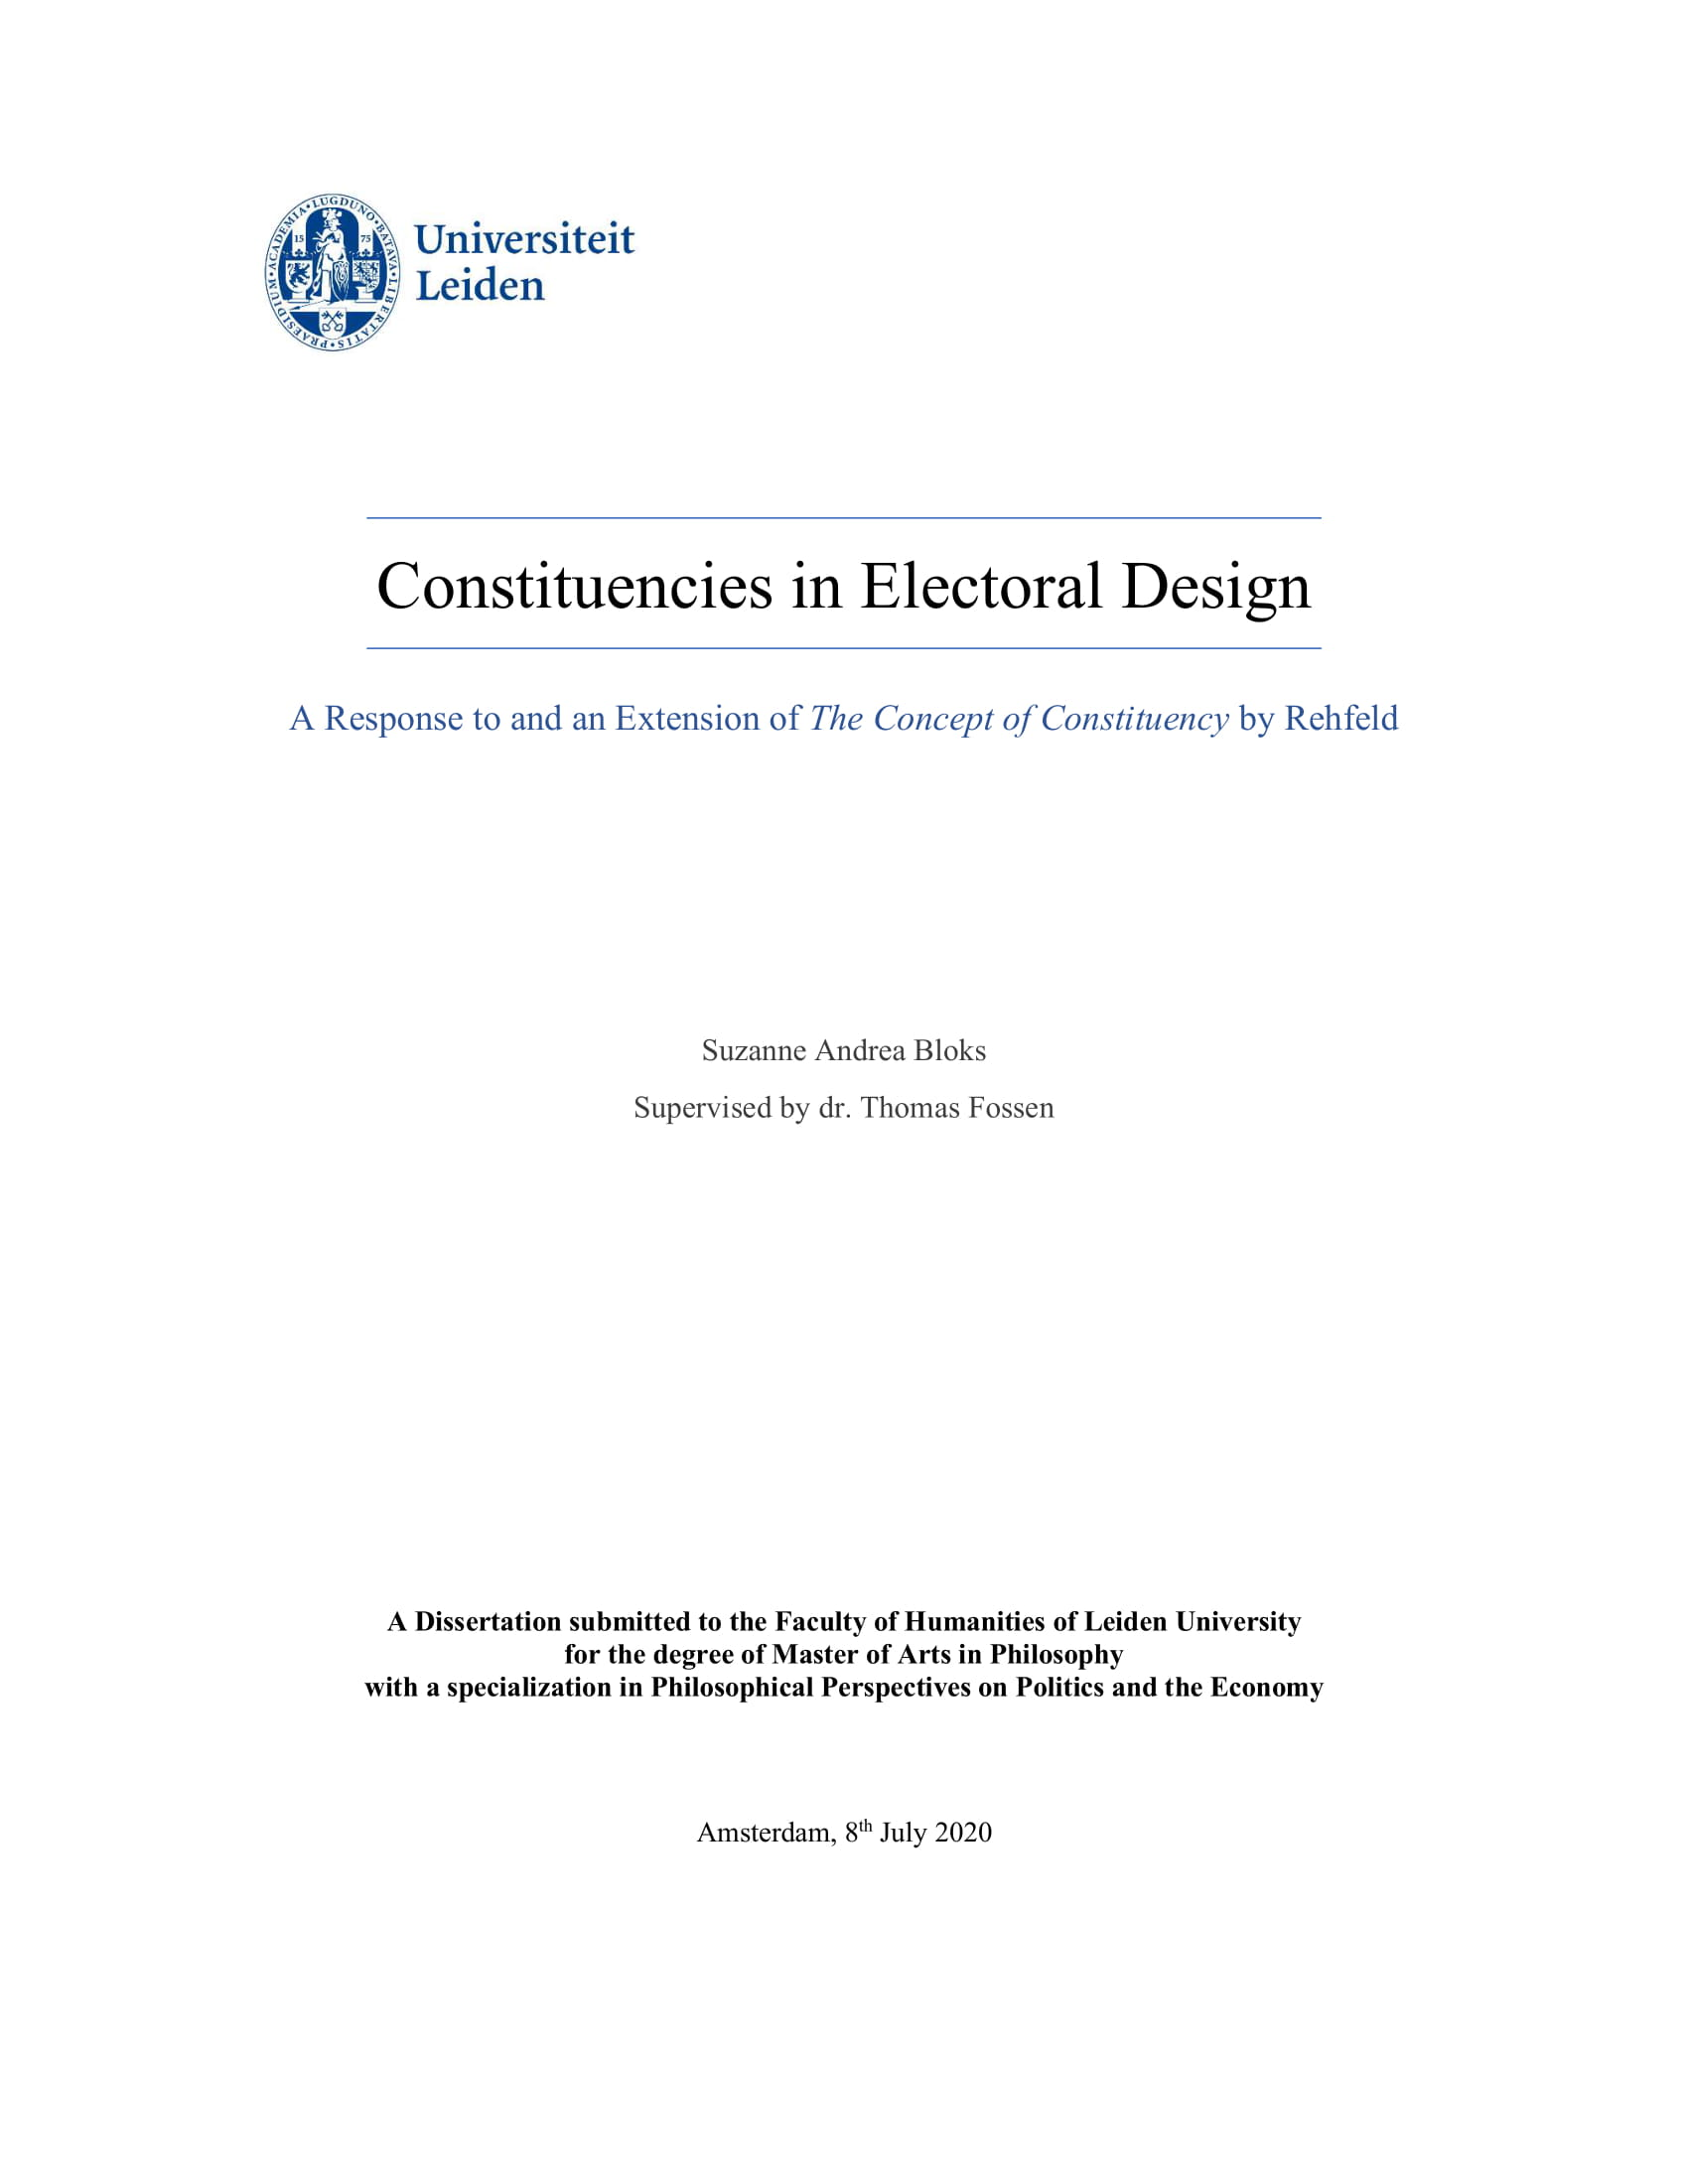 Constituencies in Electoral Design. A Response to and an Extension of The Concept of Constituency by Rehfeld.